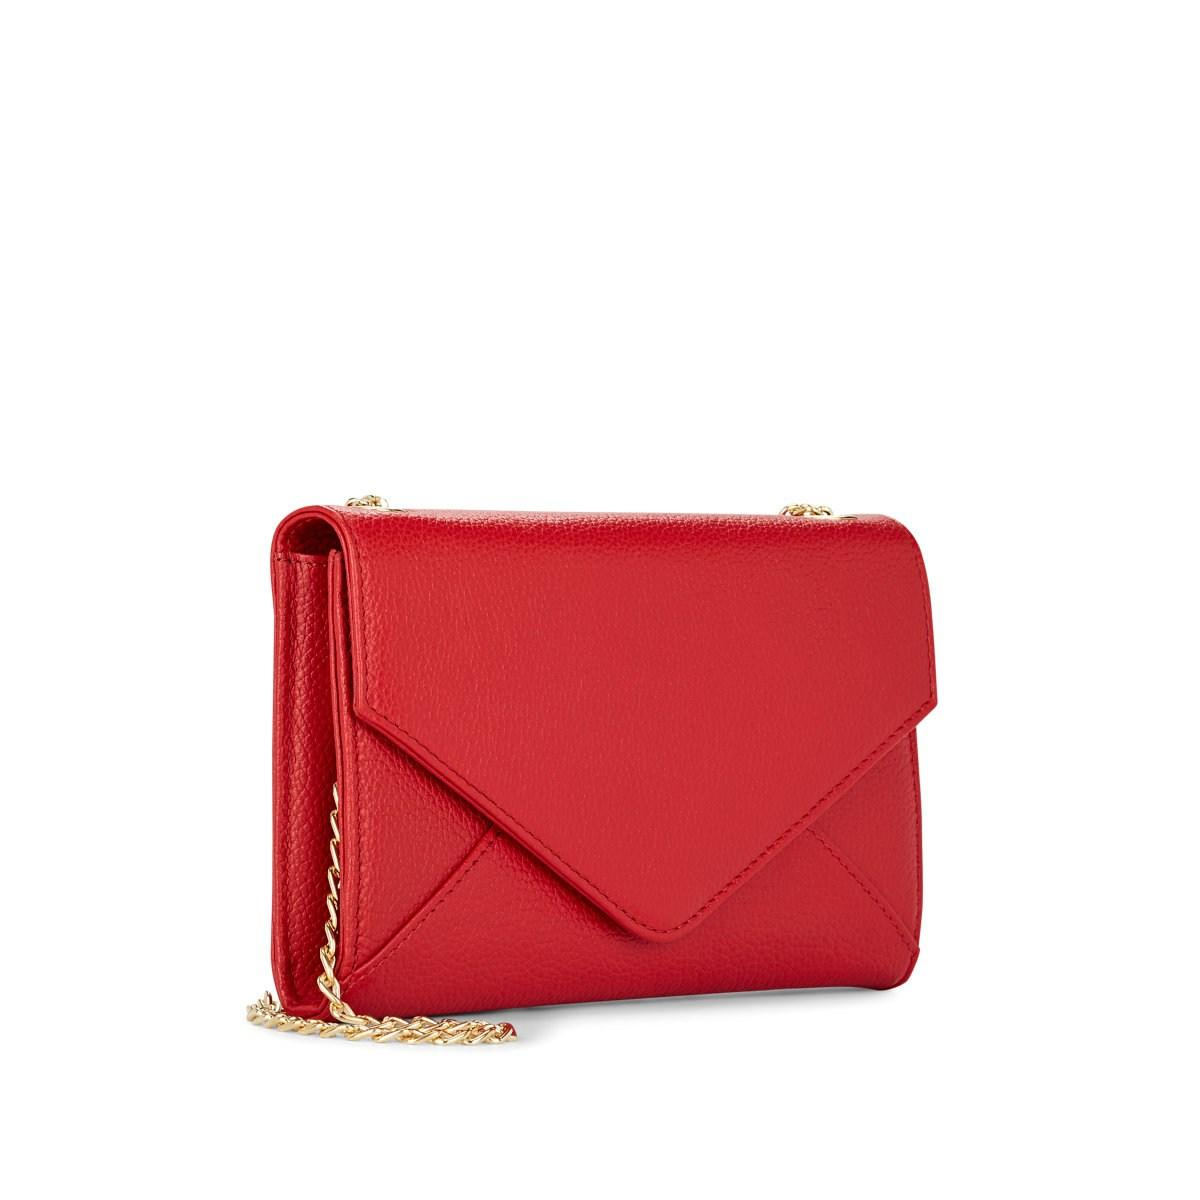 128cfcbf3153 Barneys New York - Red Hannah Leather Chain Wallet - Lyst. View fullscreen